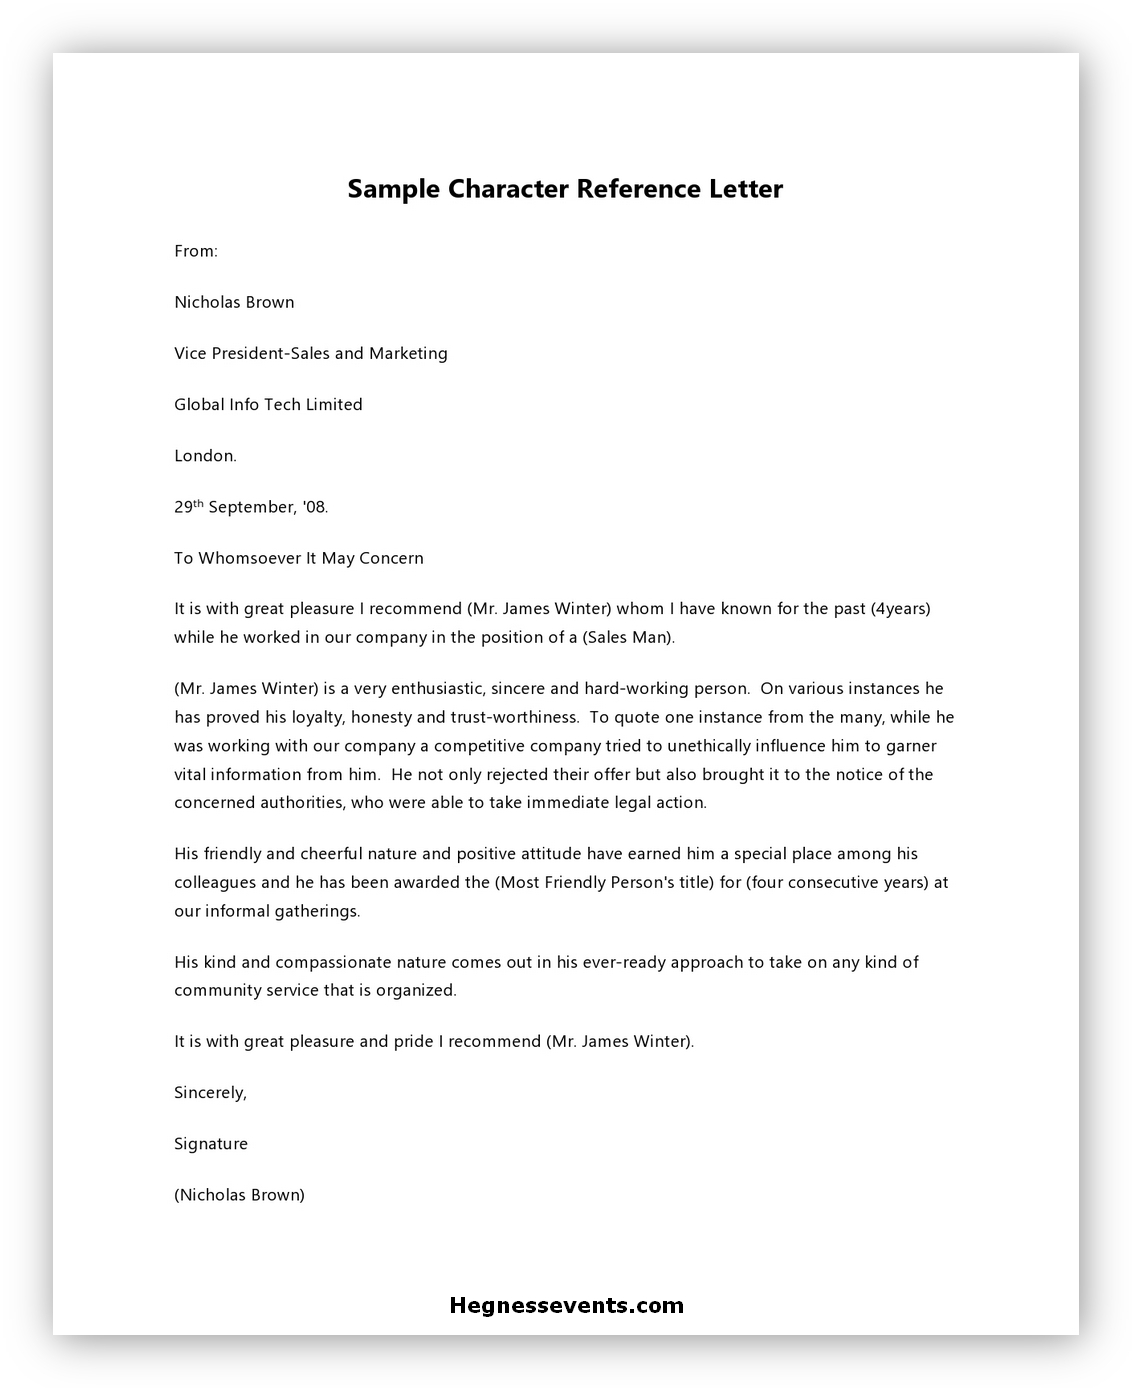 Letter of Reference Character 04